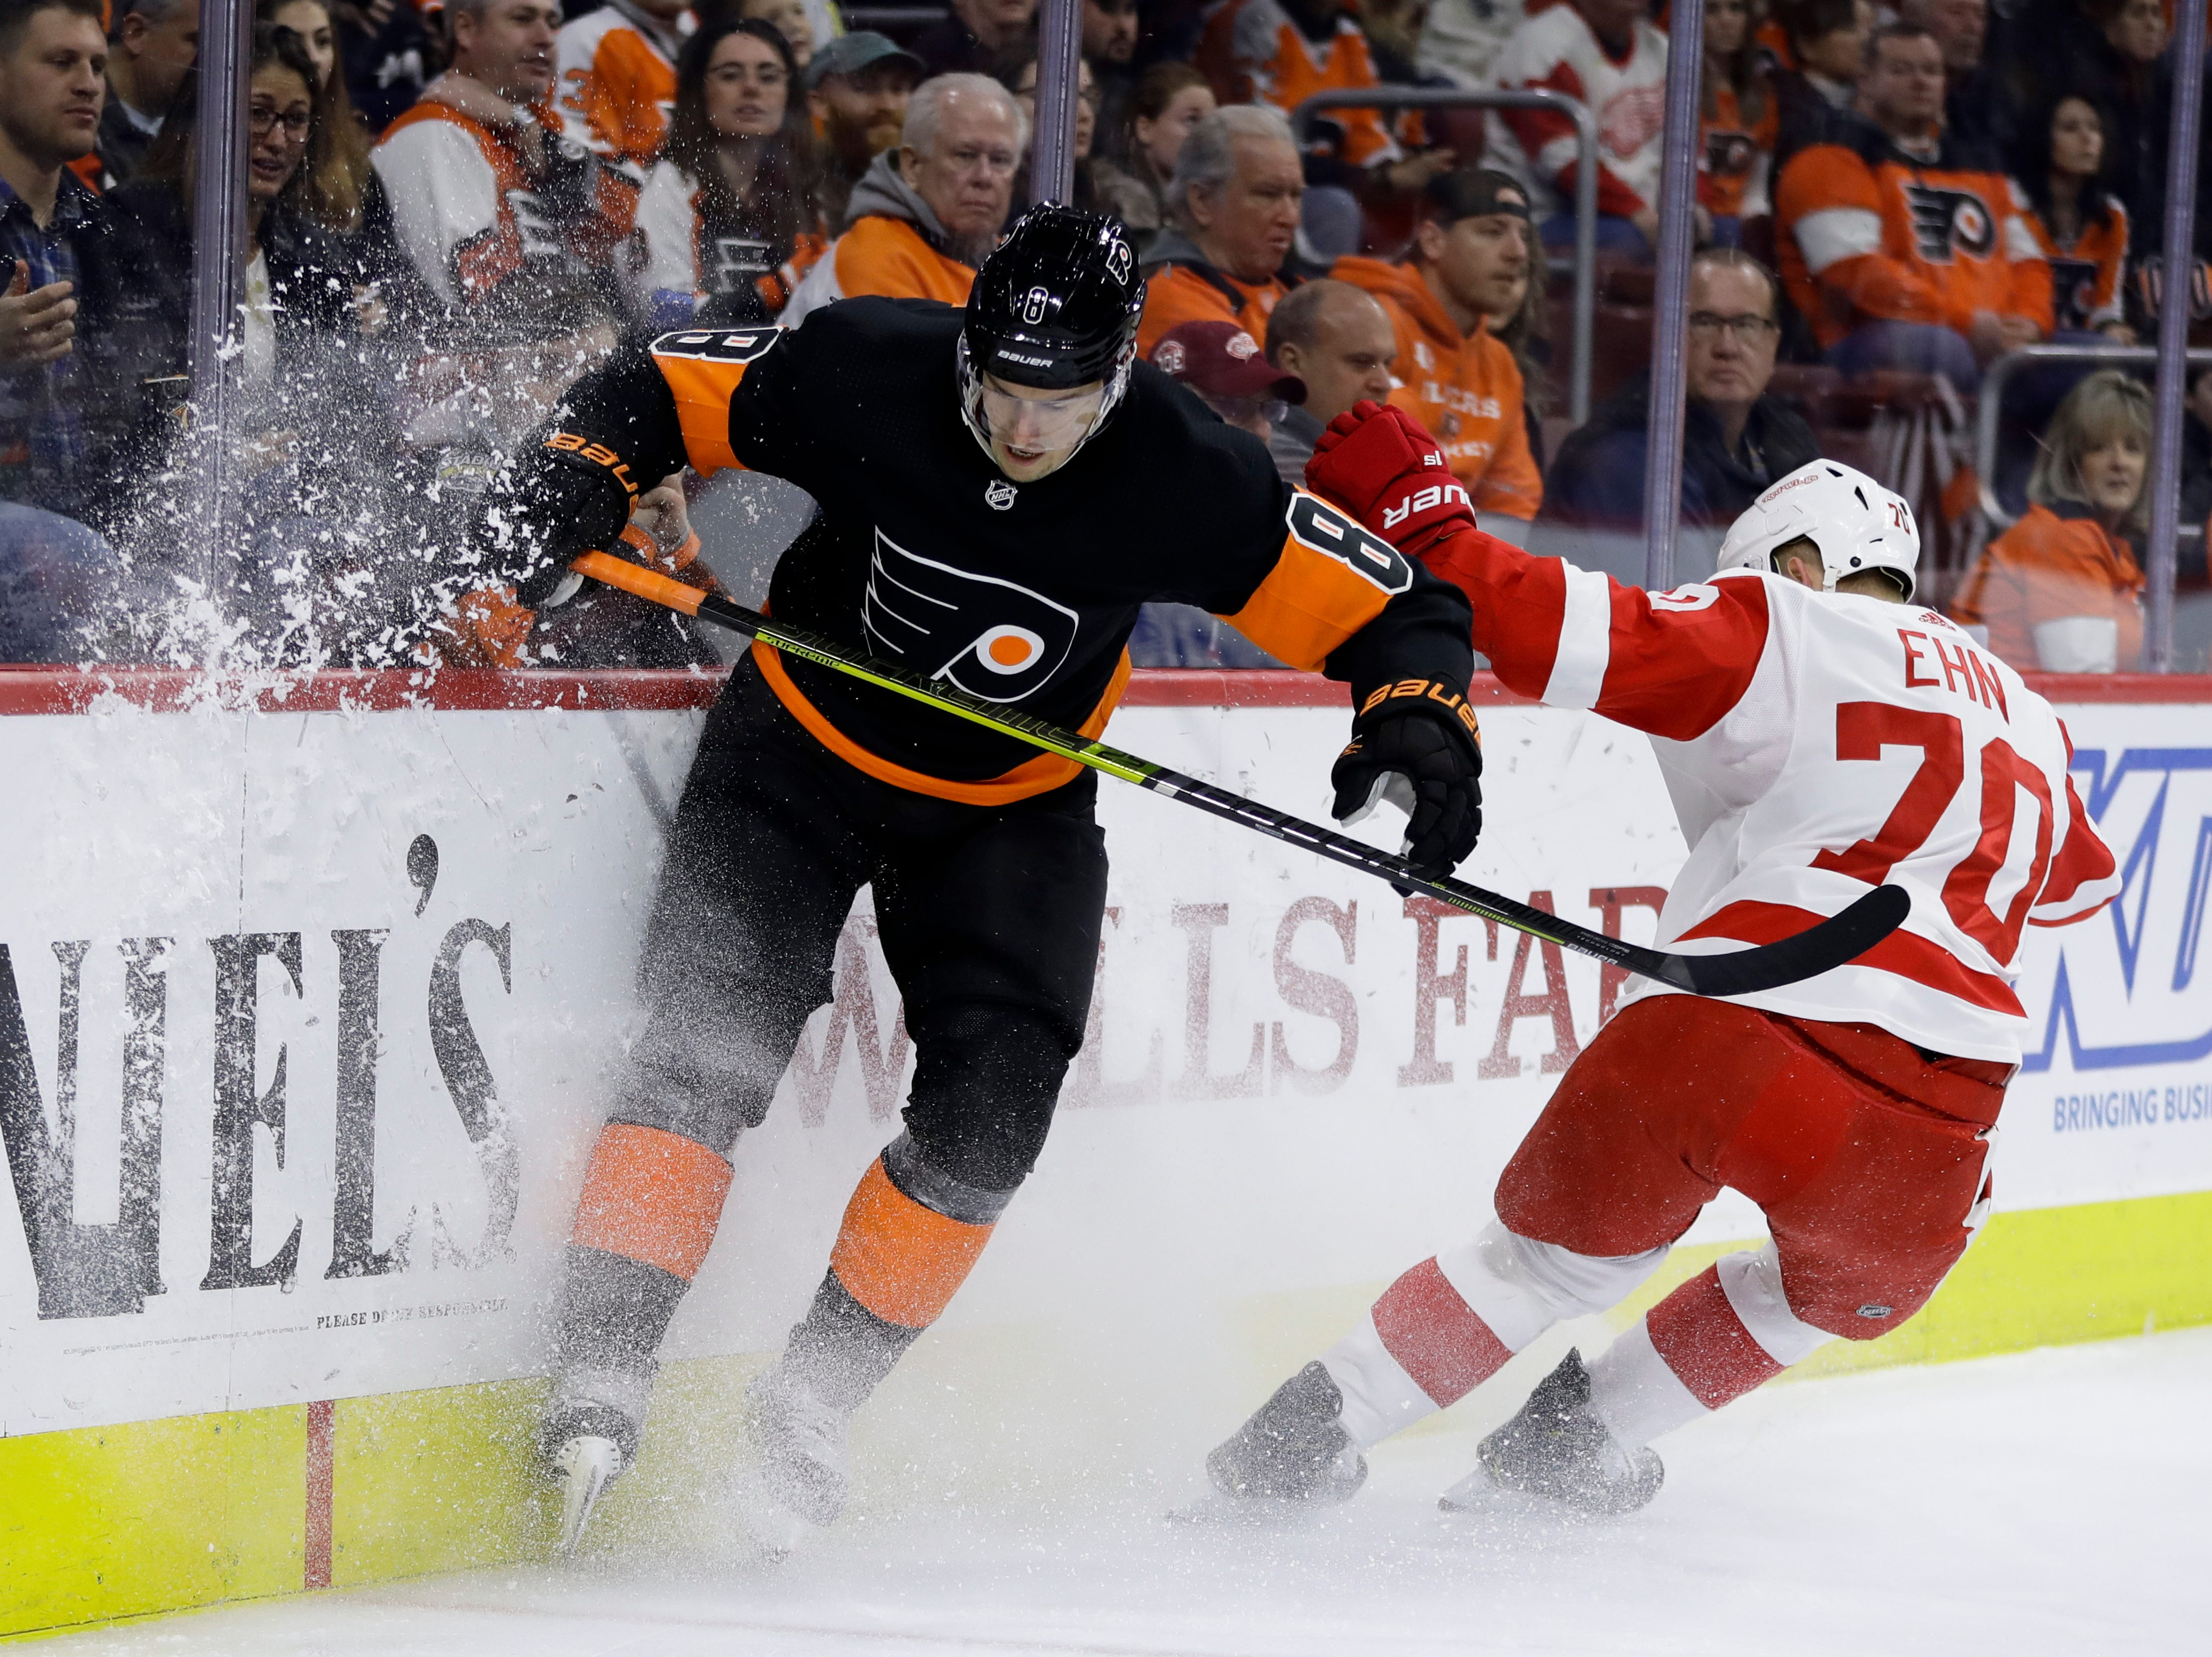 Philadelphia Flyers' Robert Hagg, left, and Detroit Red Wings' Christoffer Ehn chase after a loose puck during the first period of an NHL hockey game, Saturday, Feb. 16, 2019, in Philadelphia. (AP Photo/Matt Slocum)